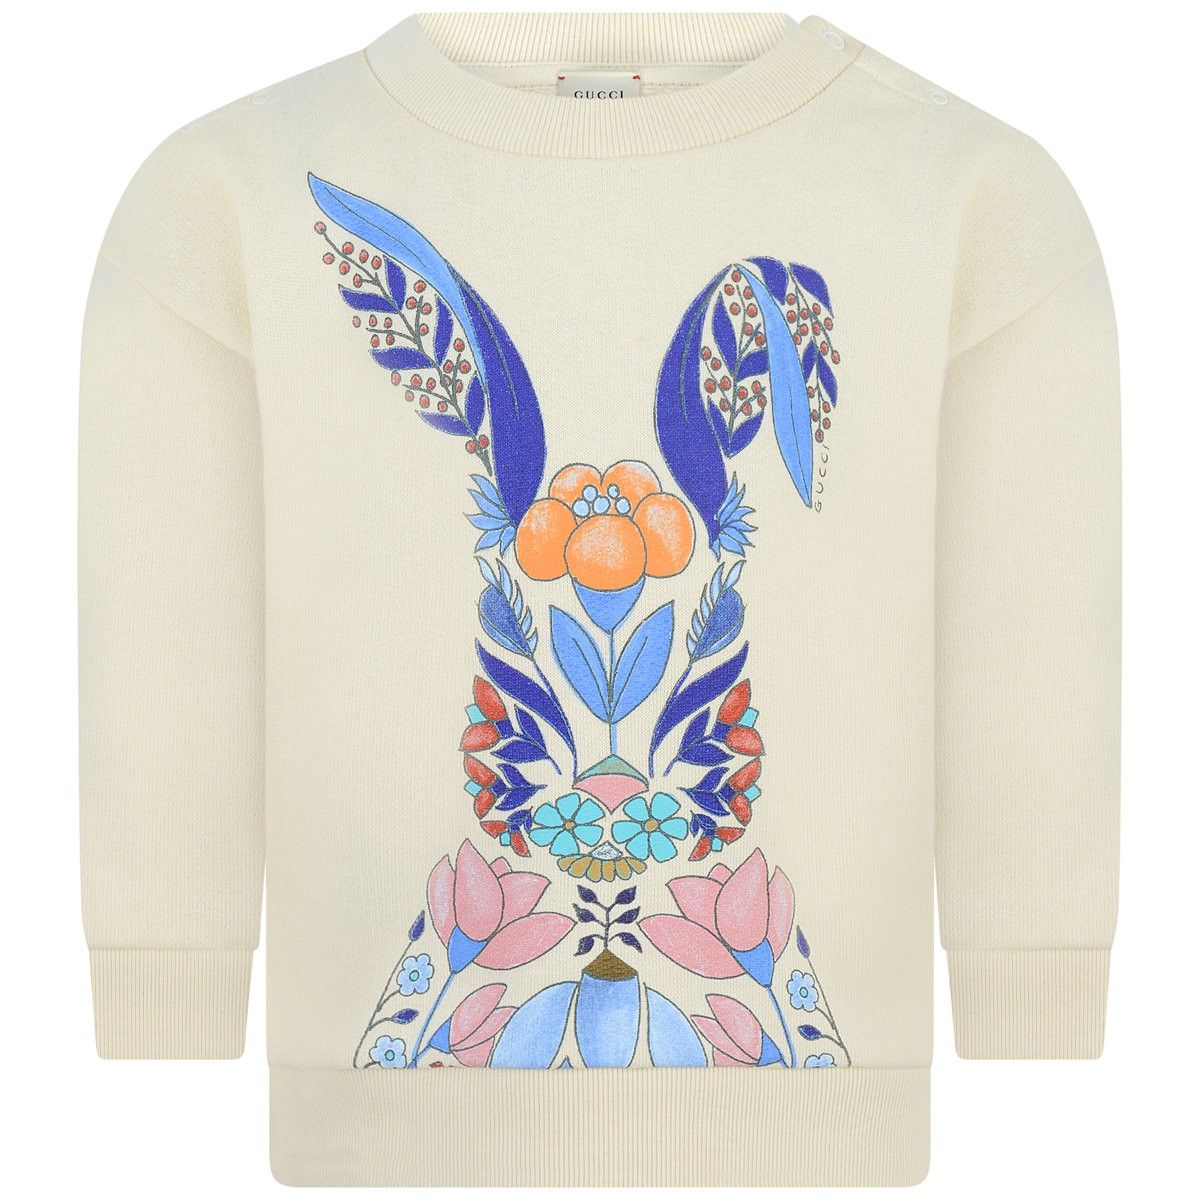 750d5208 GUCCI Baby Girls Ivory Floral Rabbit Sweatshirt | AW tears | Gucci ...